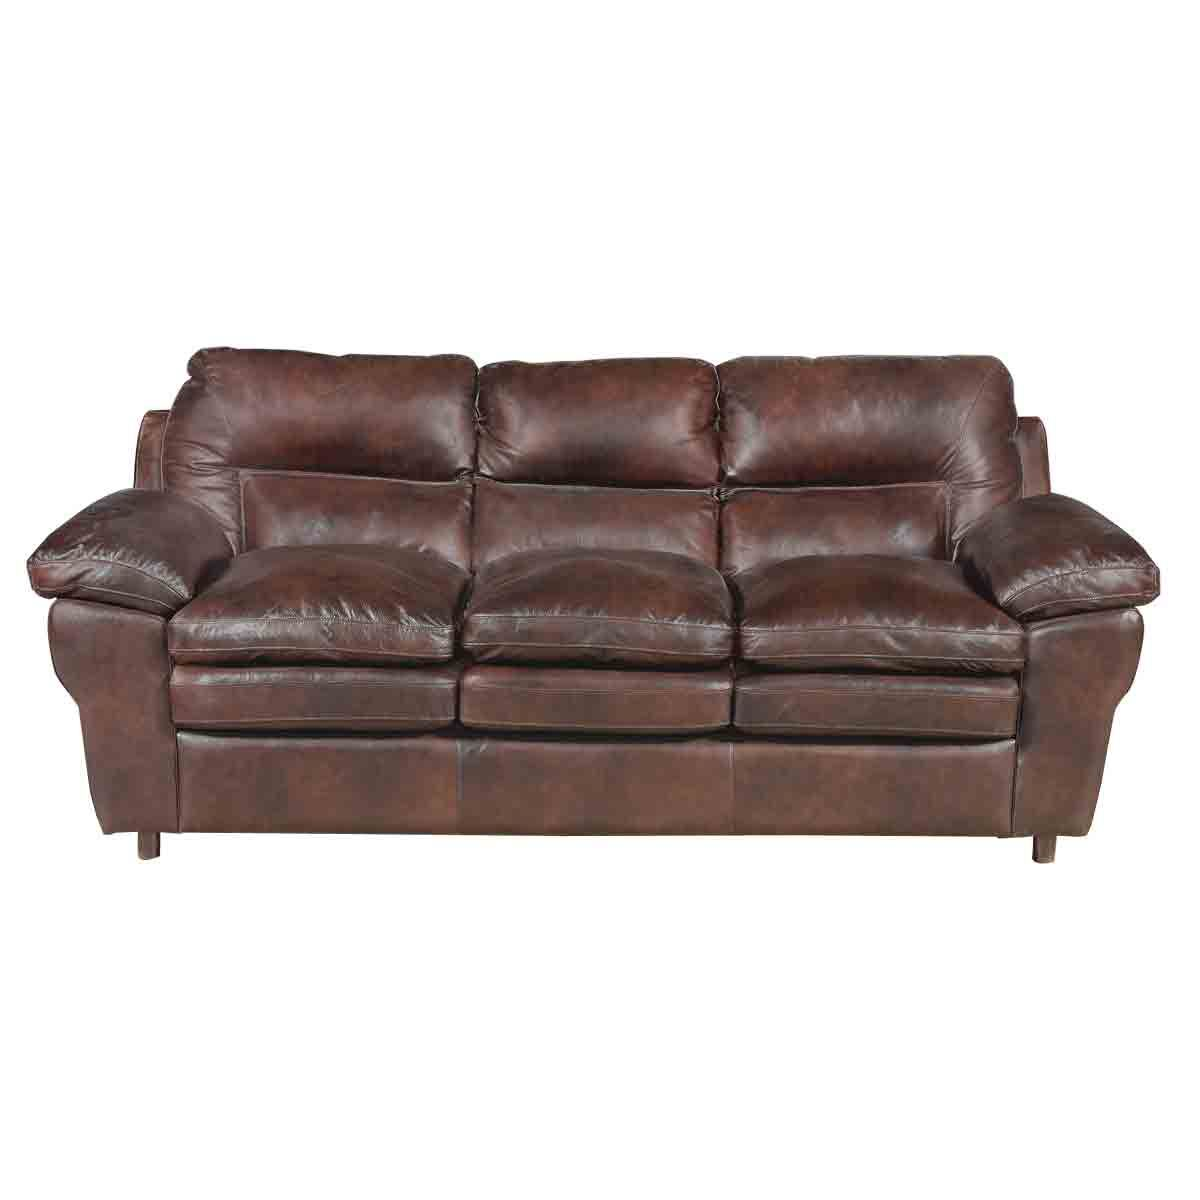 Sable Brown Leather Sofa Sleeper...so People Donu0027t Have To Sleep